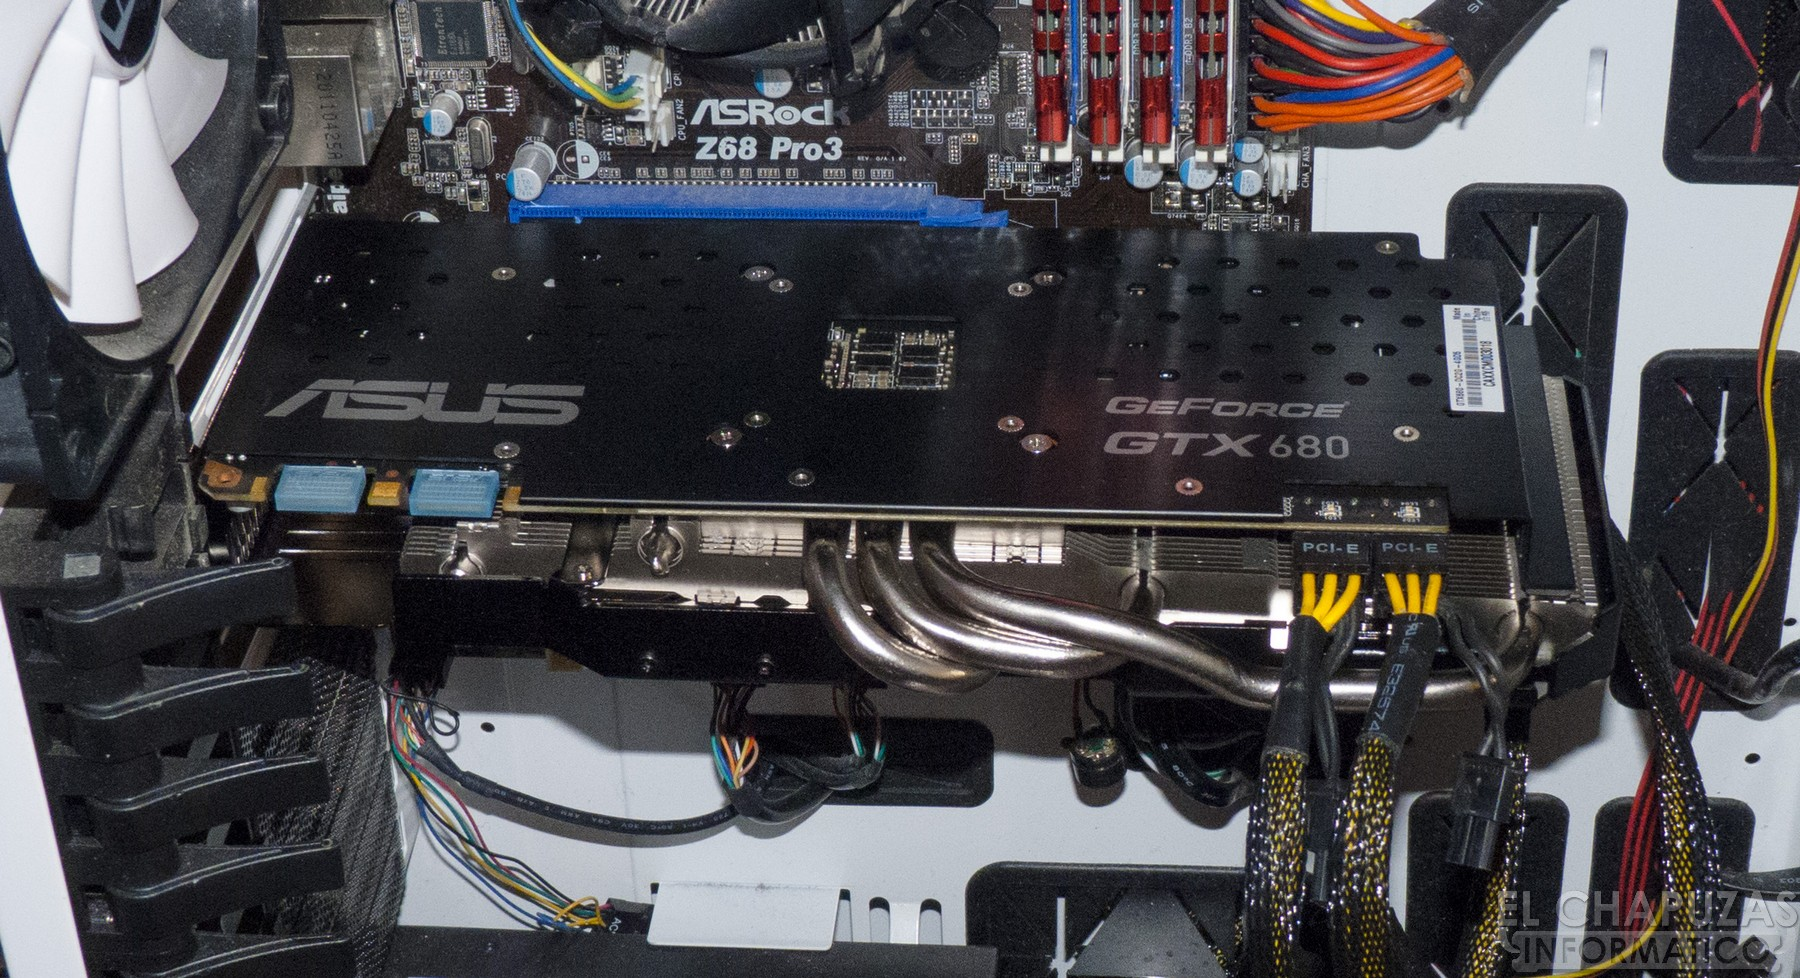 Review: Asus GeForce GTX 680 DirectCU II 4GB